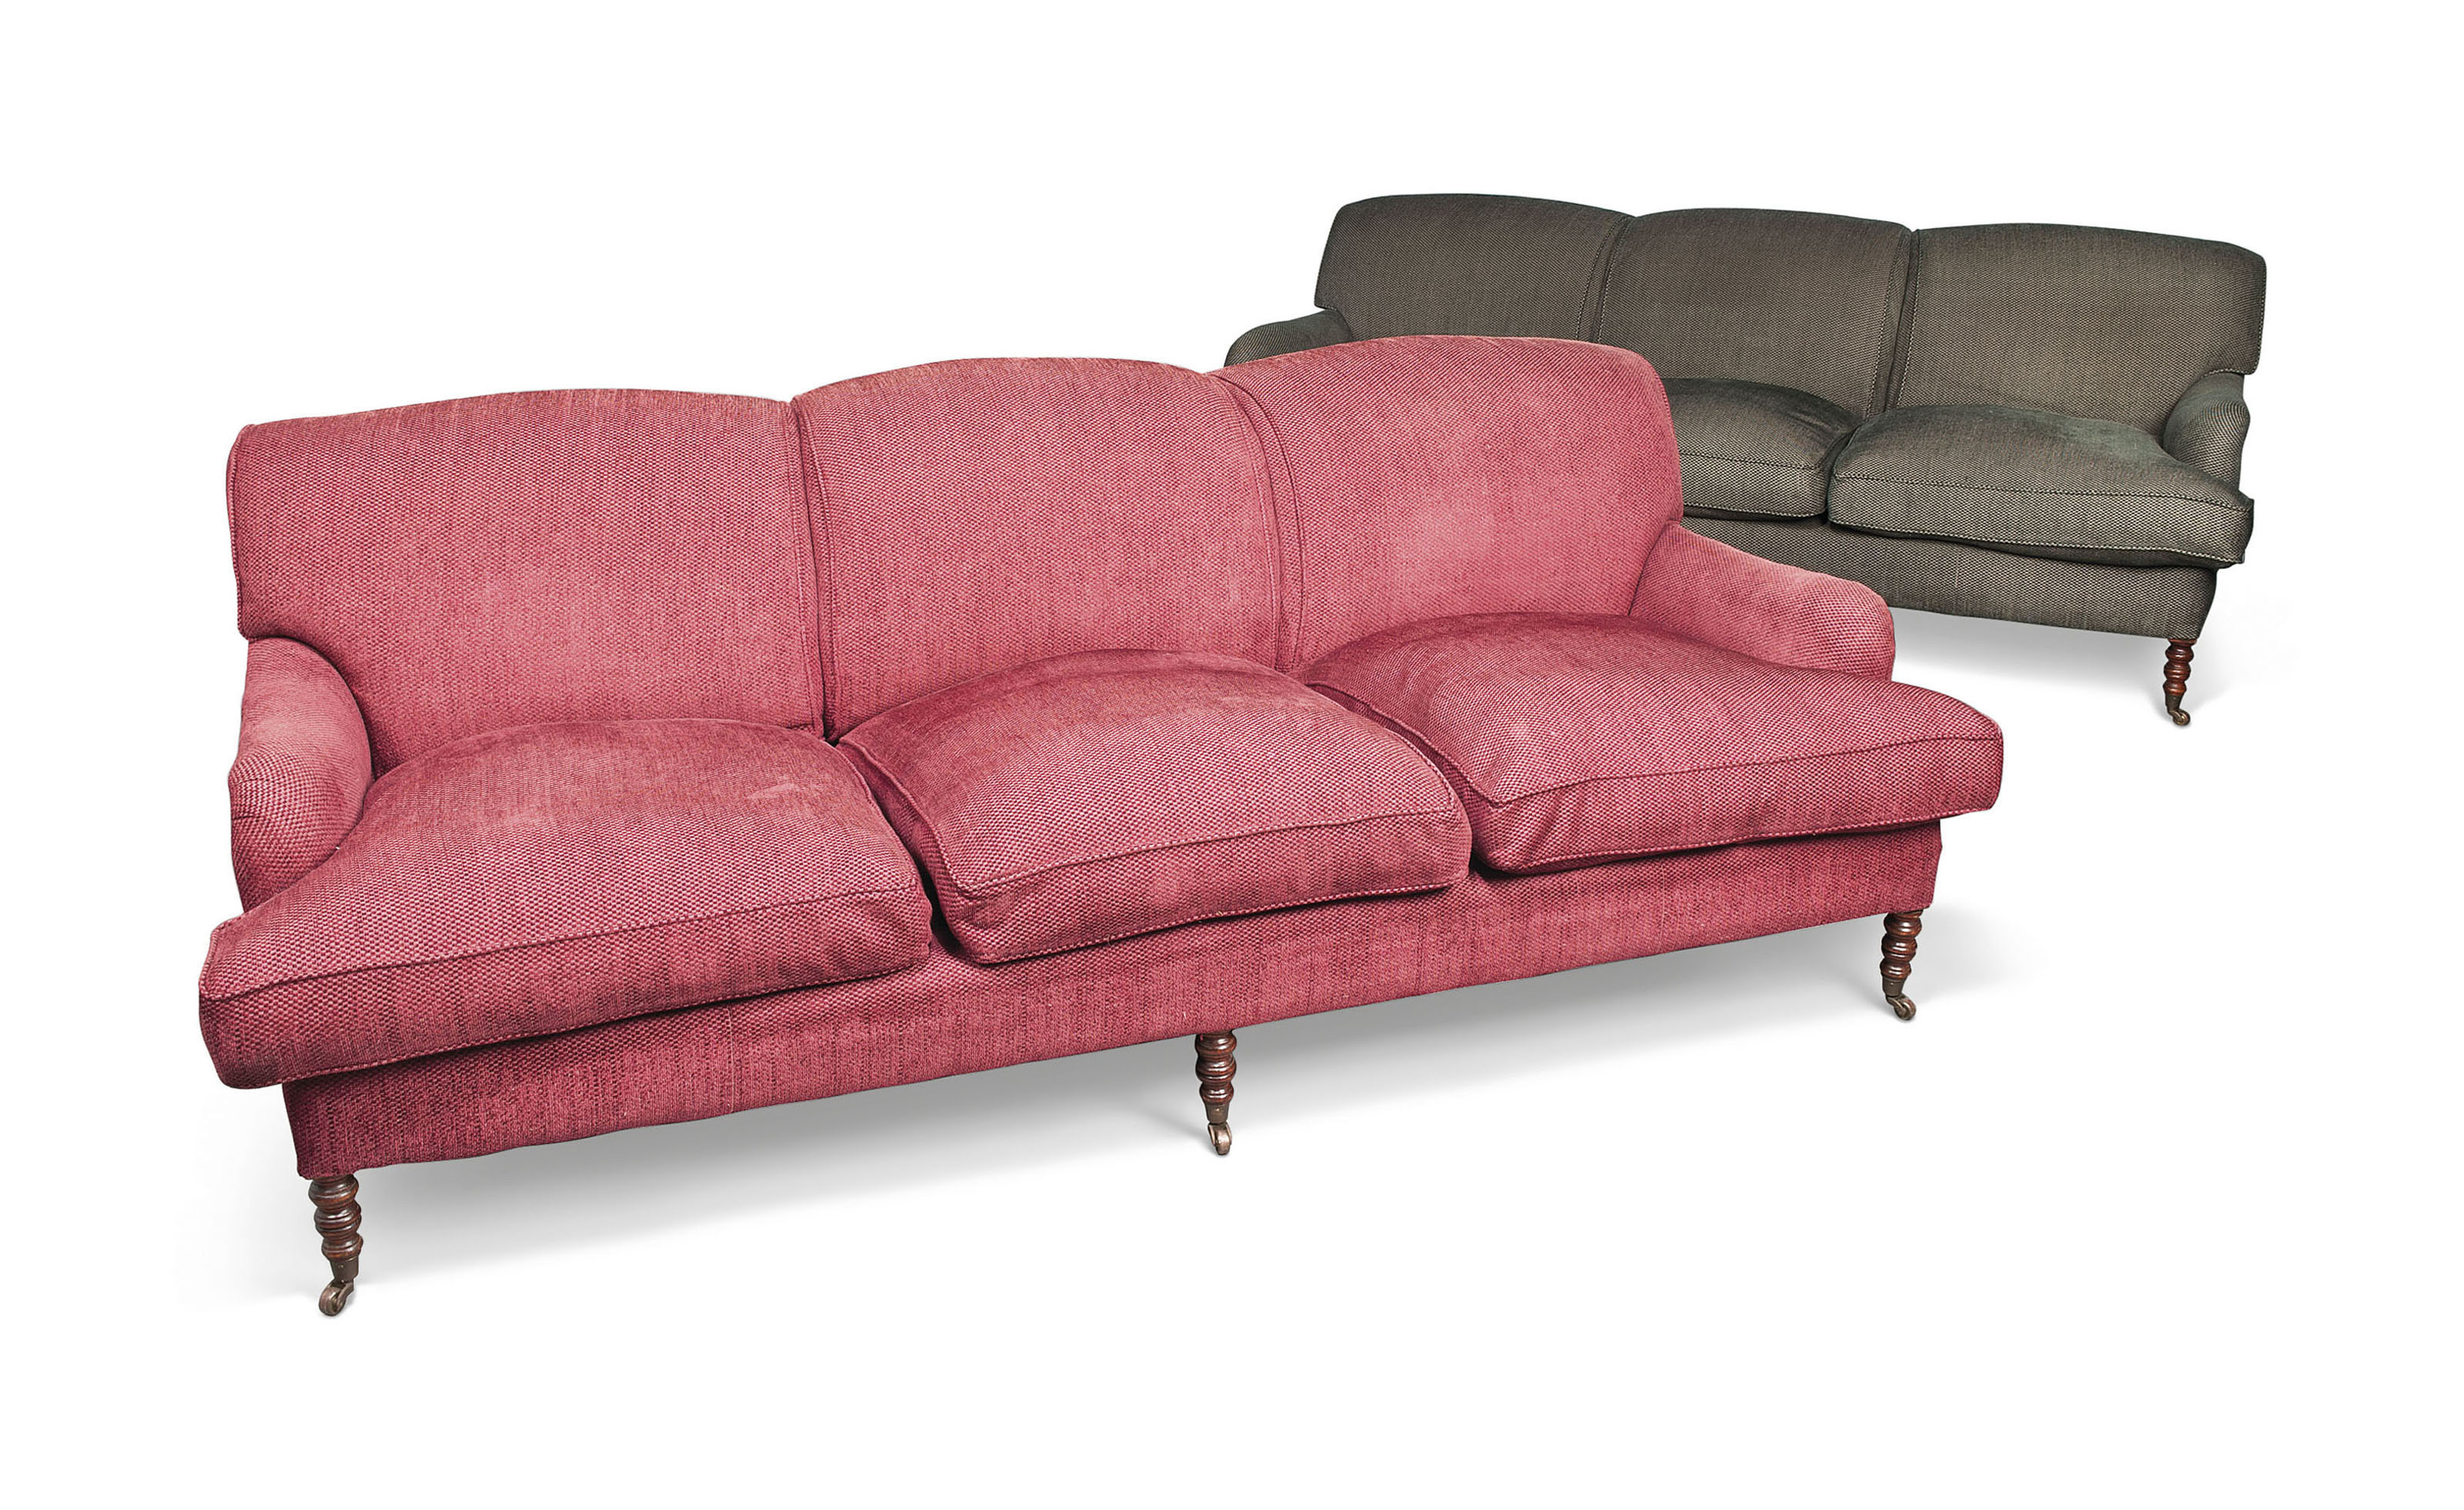 TWO UPHOLSTERED SOFAS